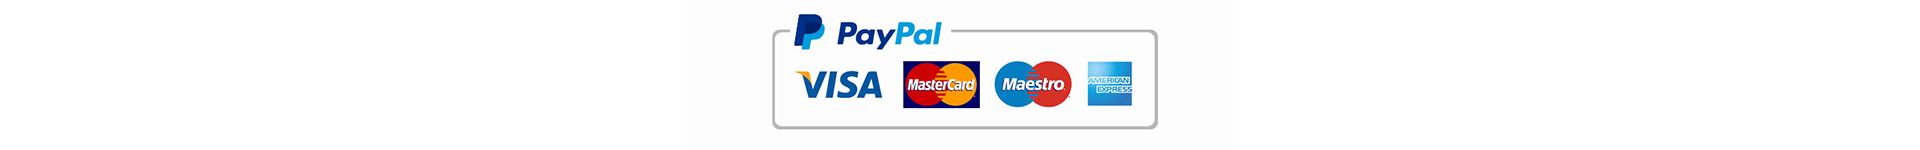 powered by paypal line